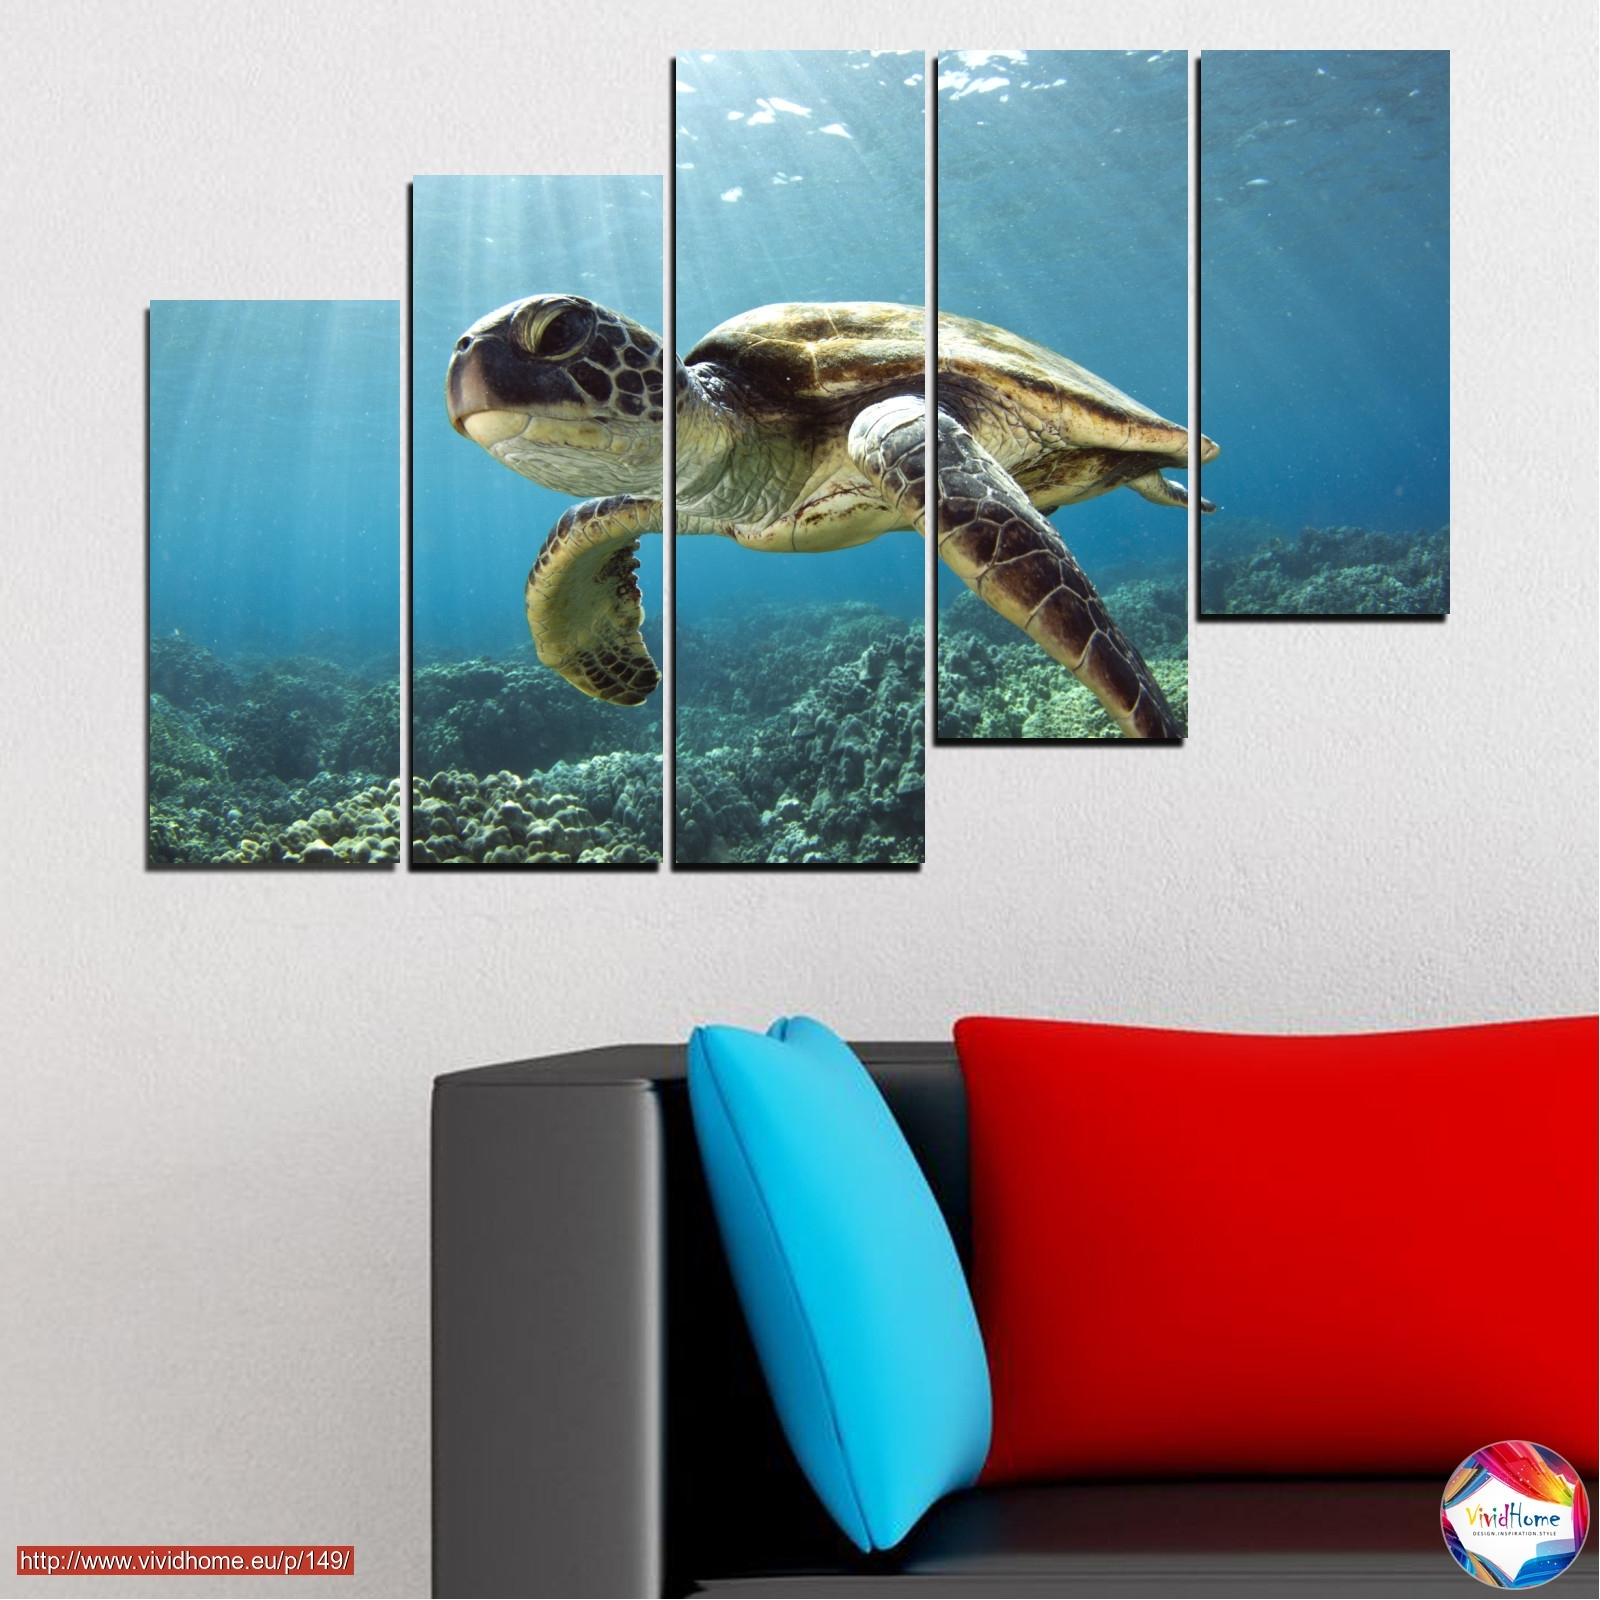 Landscape, Water, Sea, Turtle ?0149 With Regard To Most Up To Date Sea Turtle Canvas Wall Art (View 13 of 20)